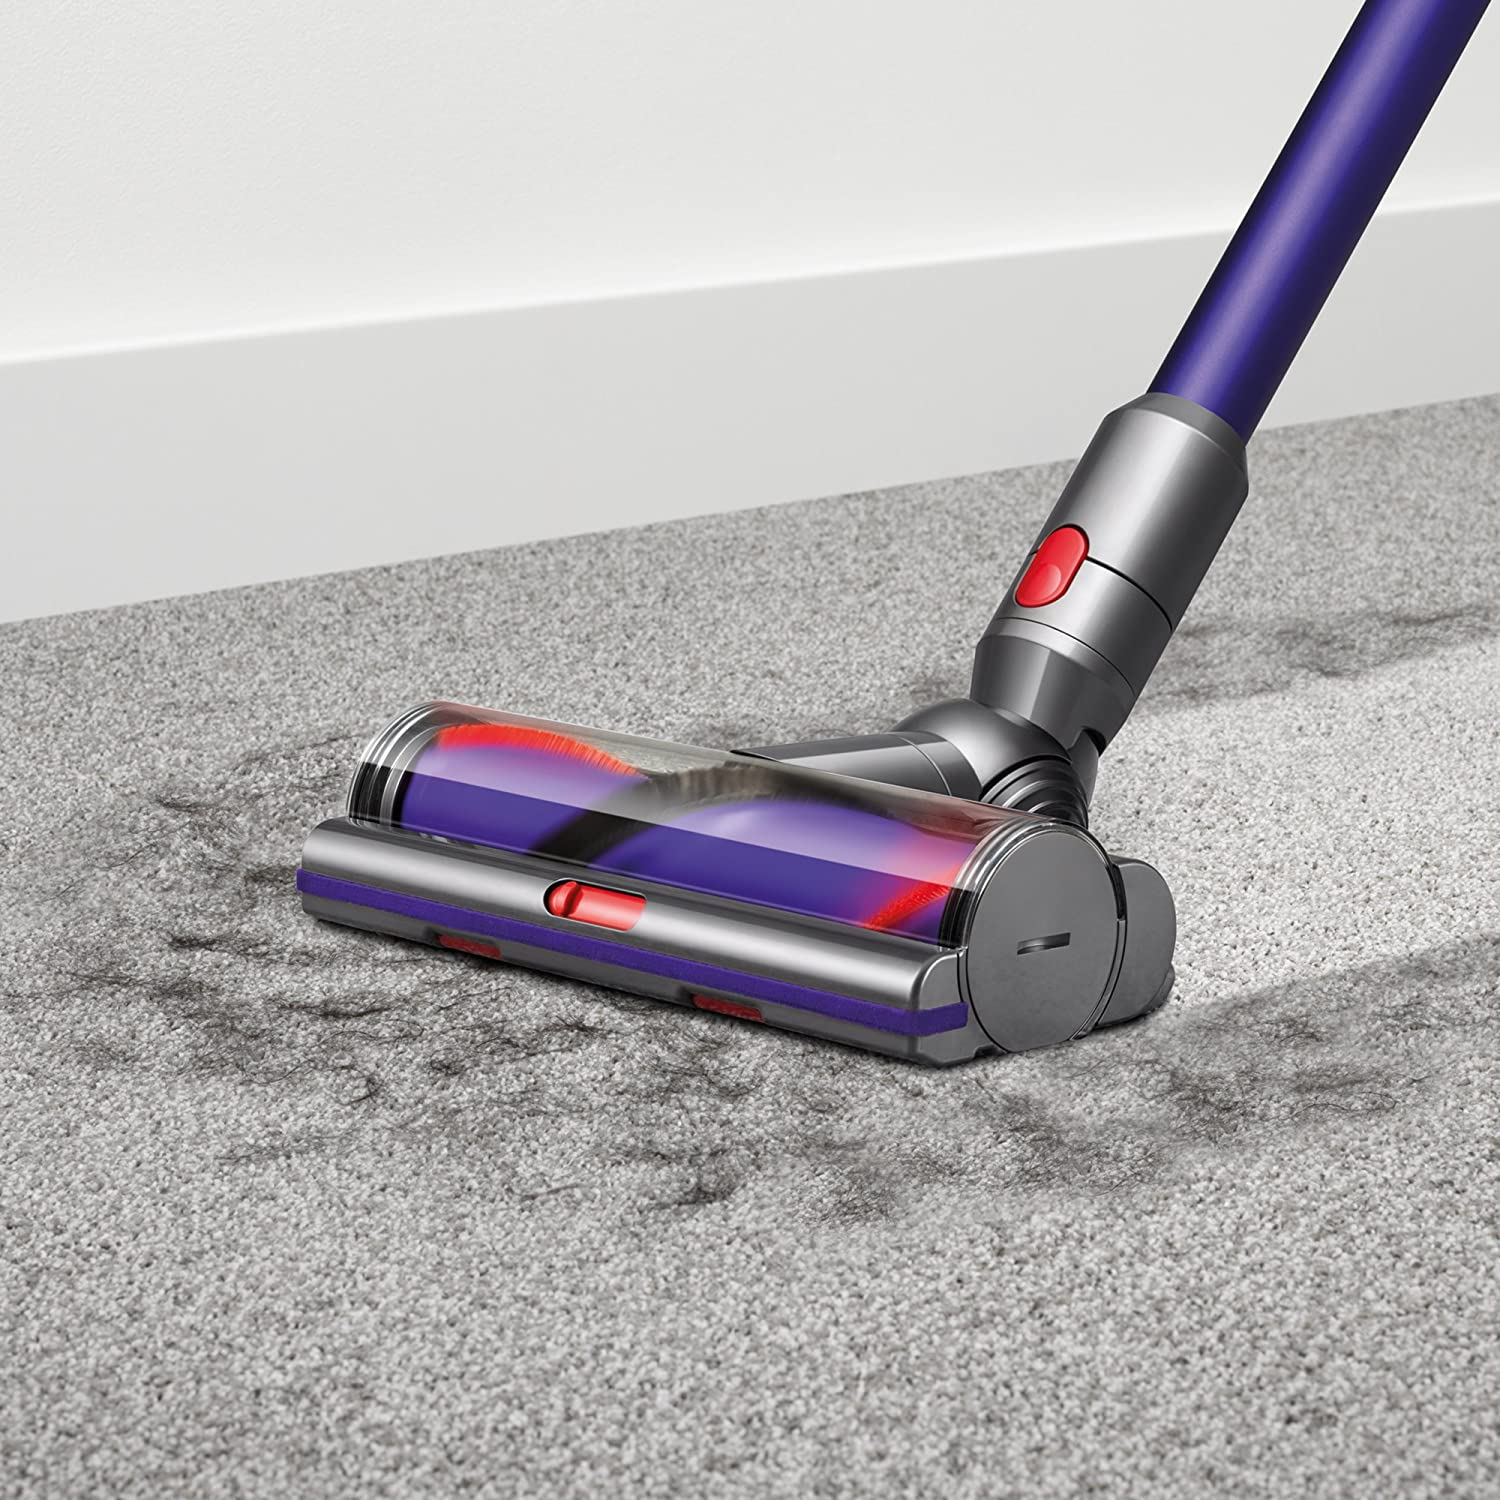 Best vacuum cleaner not dyson запчасти для dyson dc62